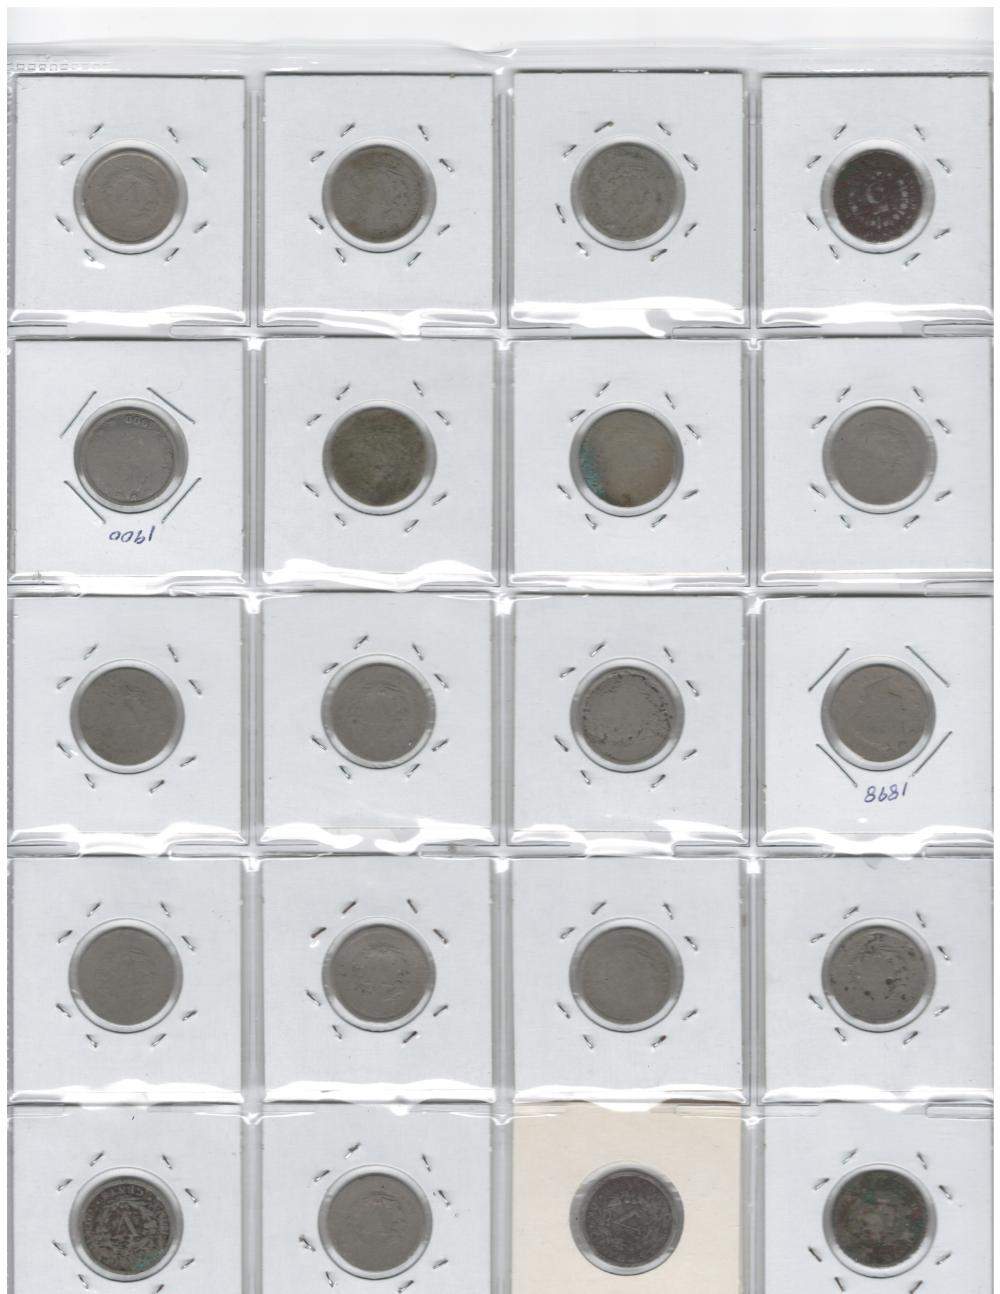 Lot of 20 assorted V nickels